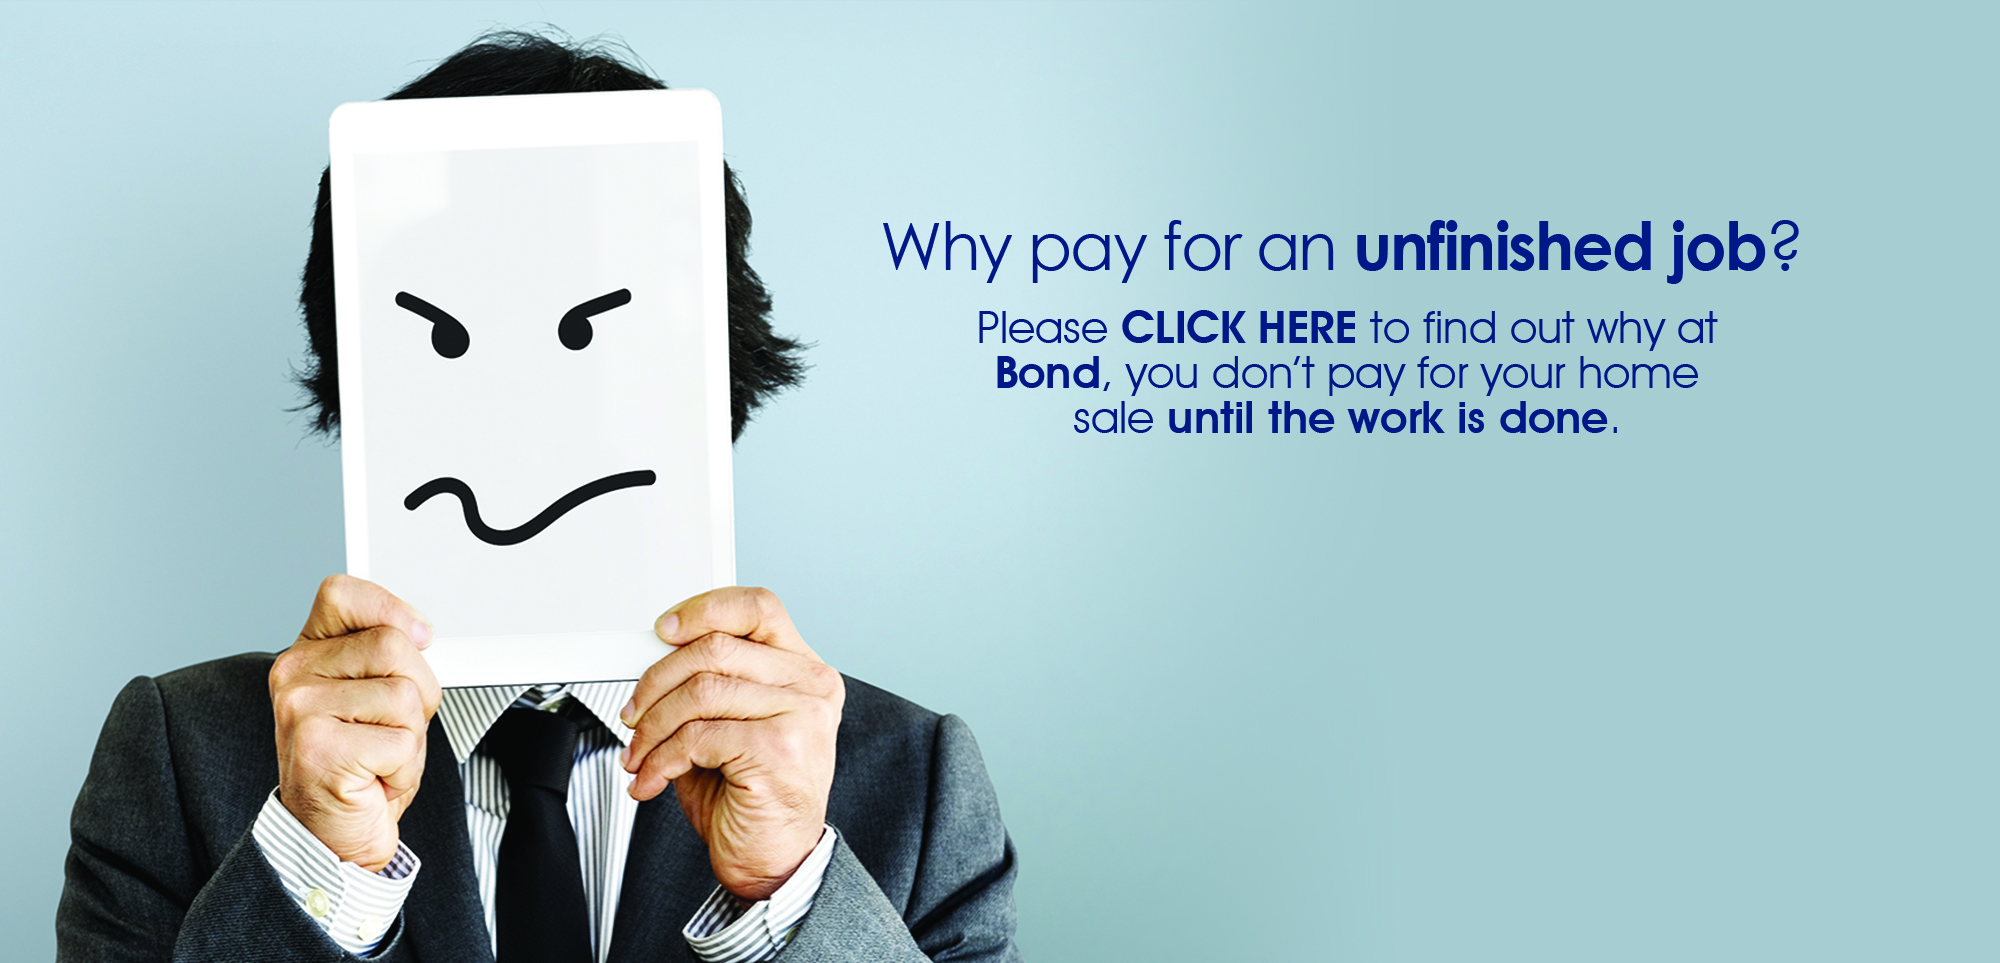 Why pay for an unfinished job?